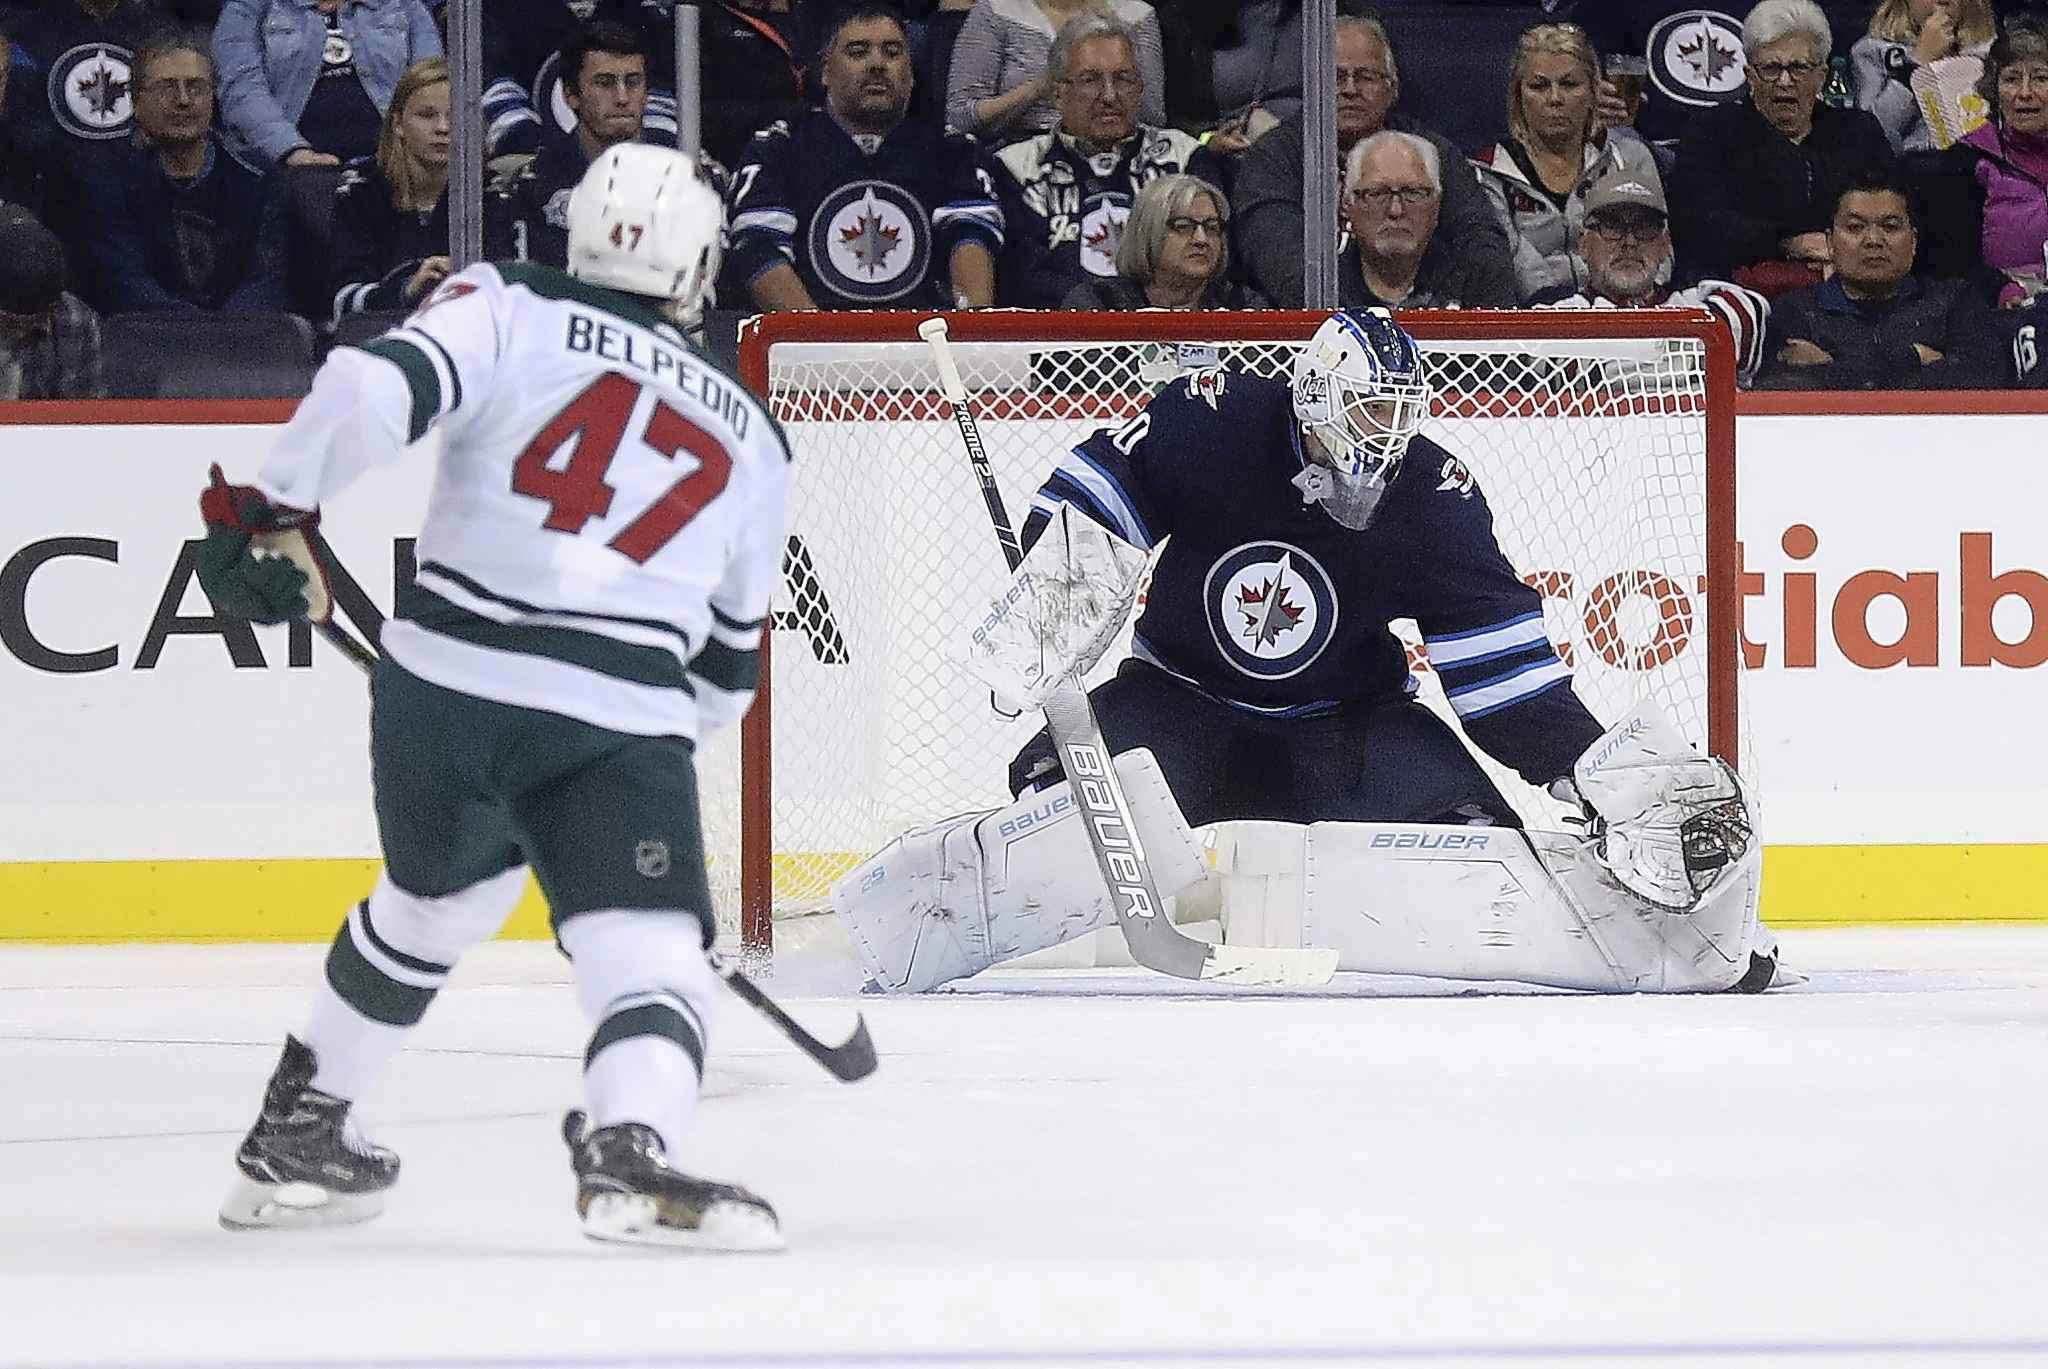 <p>Winnipeg Jets goaltender Laurent Brossoit stops a shot by the Minnesota Wild's Louie Belpedio during second period preseason NHL hockey in Winnipeg, Monday. Brossoit made 39 saves in the Jets 2-1 victory.</p>